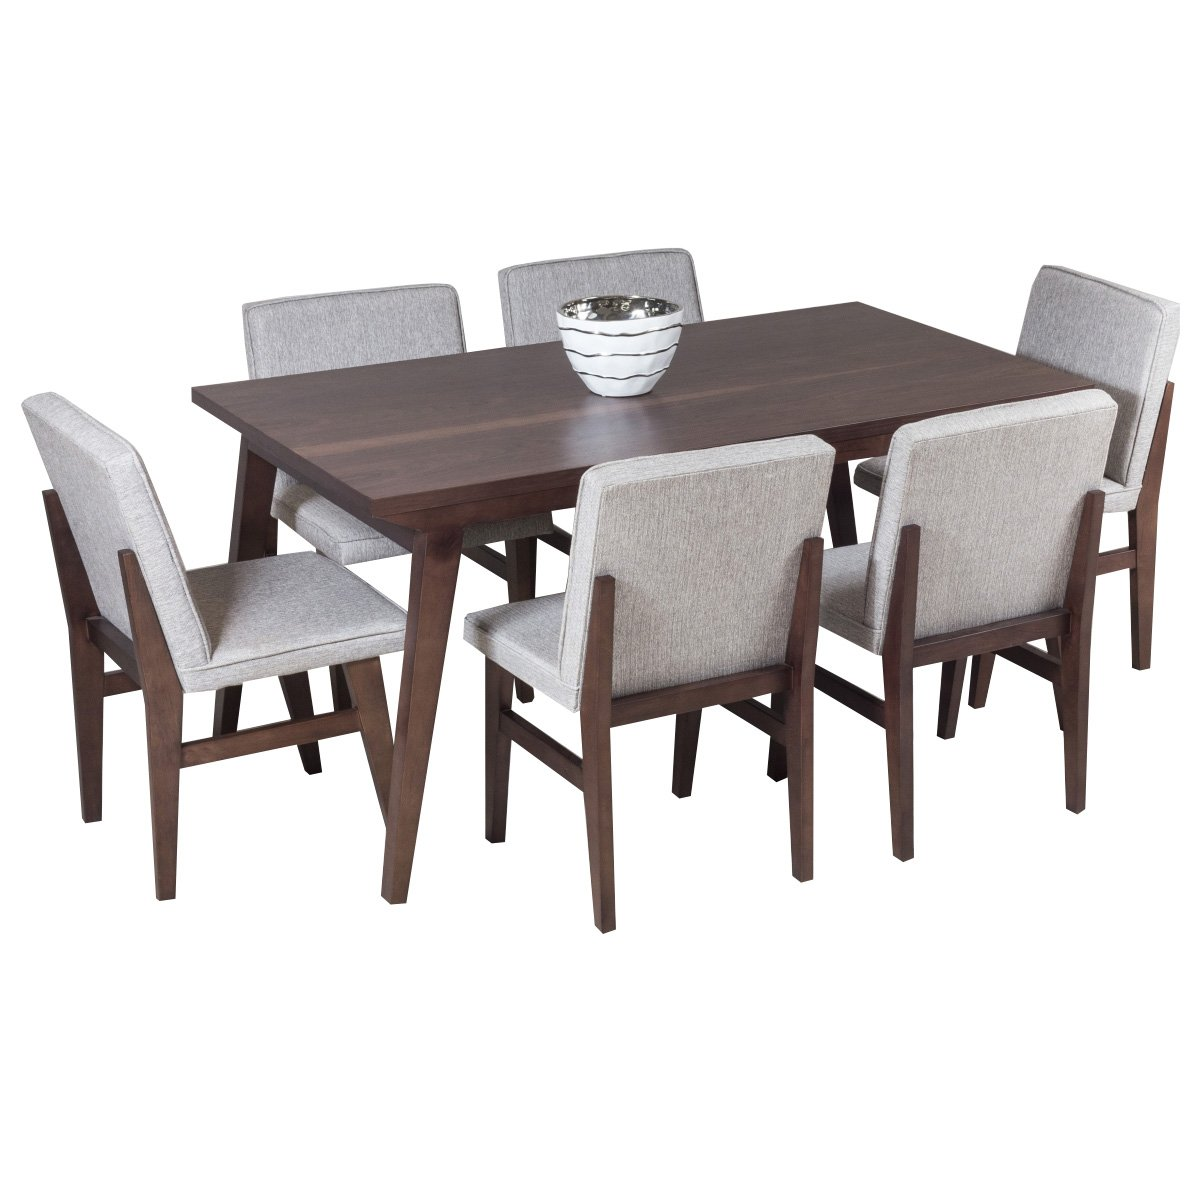 Comedor neruda con 6 sillas color nogal vigar sears com for Comedores para bebes